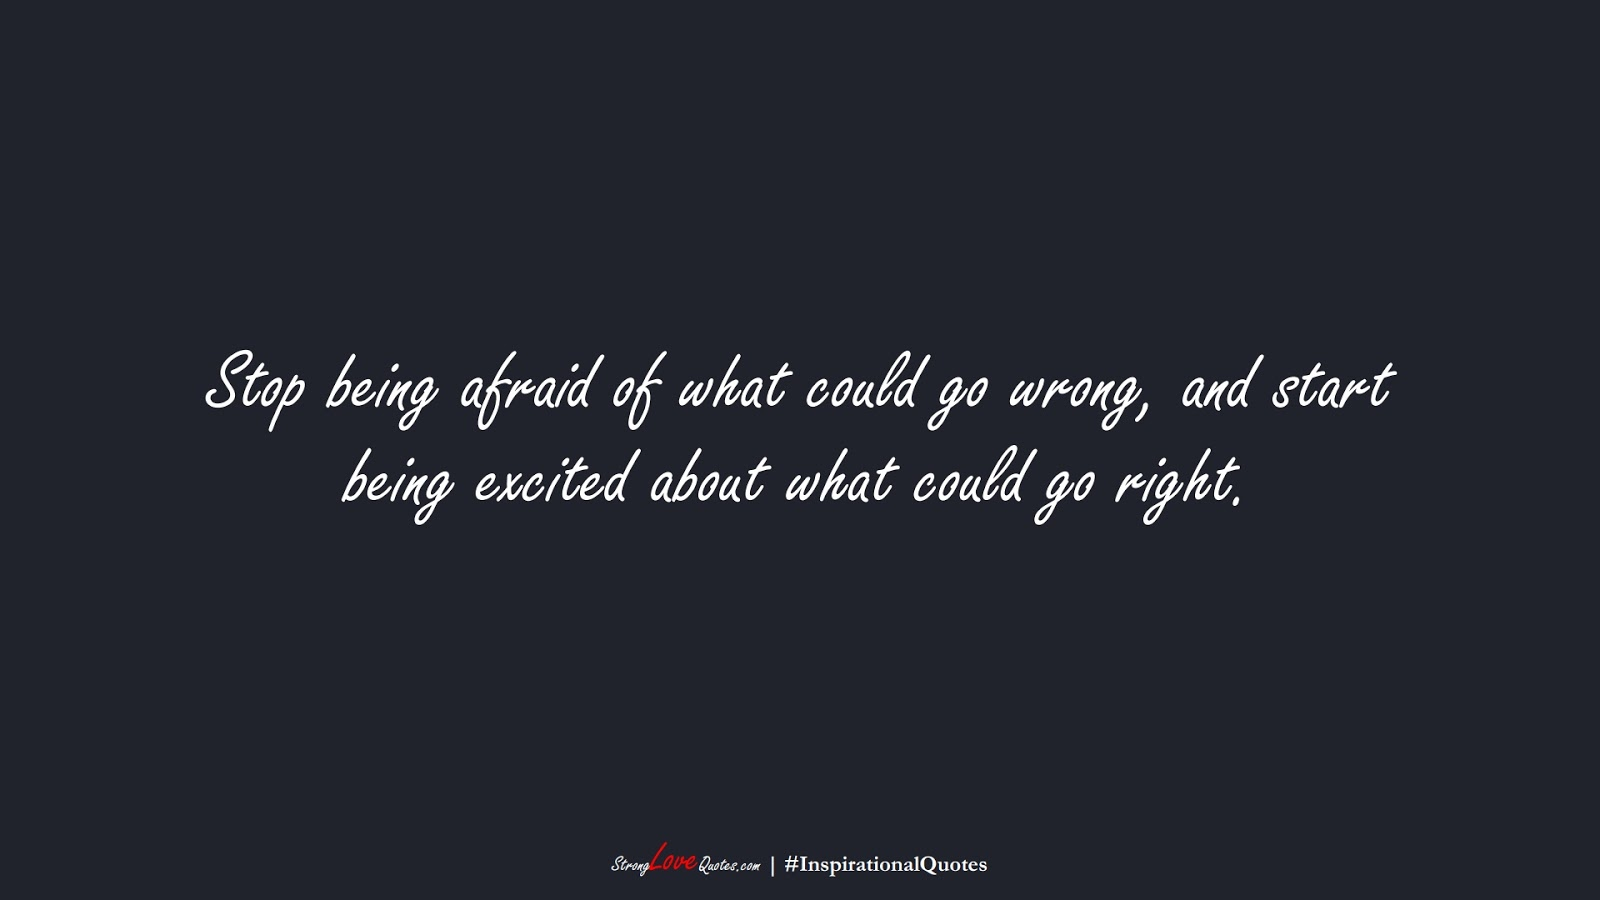 Stop being afraid of what could go wrong, and start being excited about what could go right.FALSE